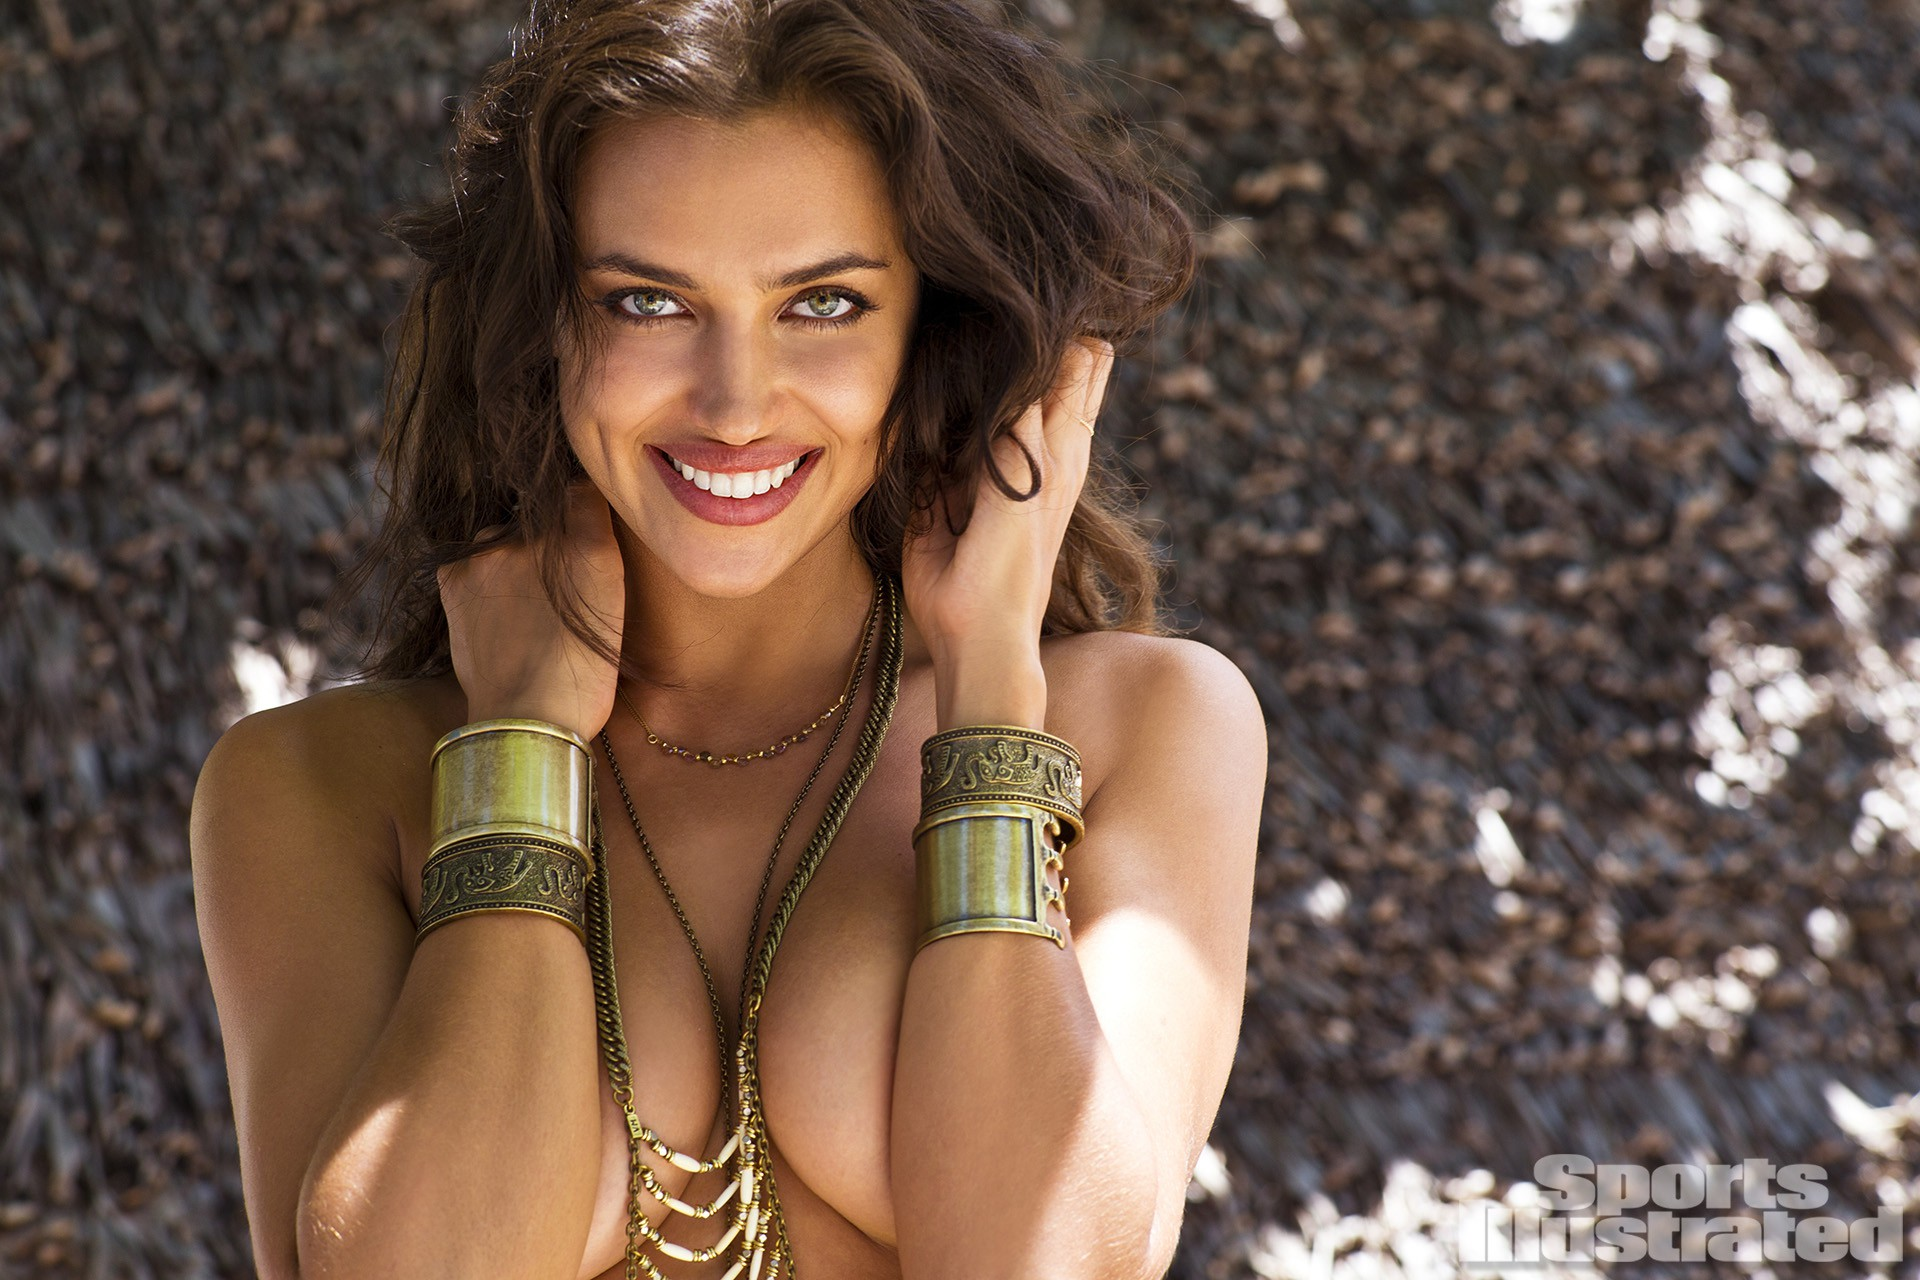 irina-shayk-2014-photo-sports-illustrated-1194141231-15582503222811190628114.jpg